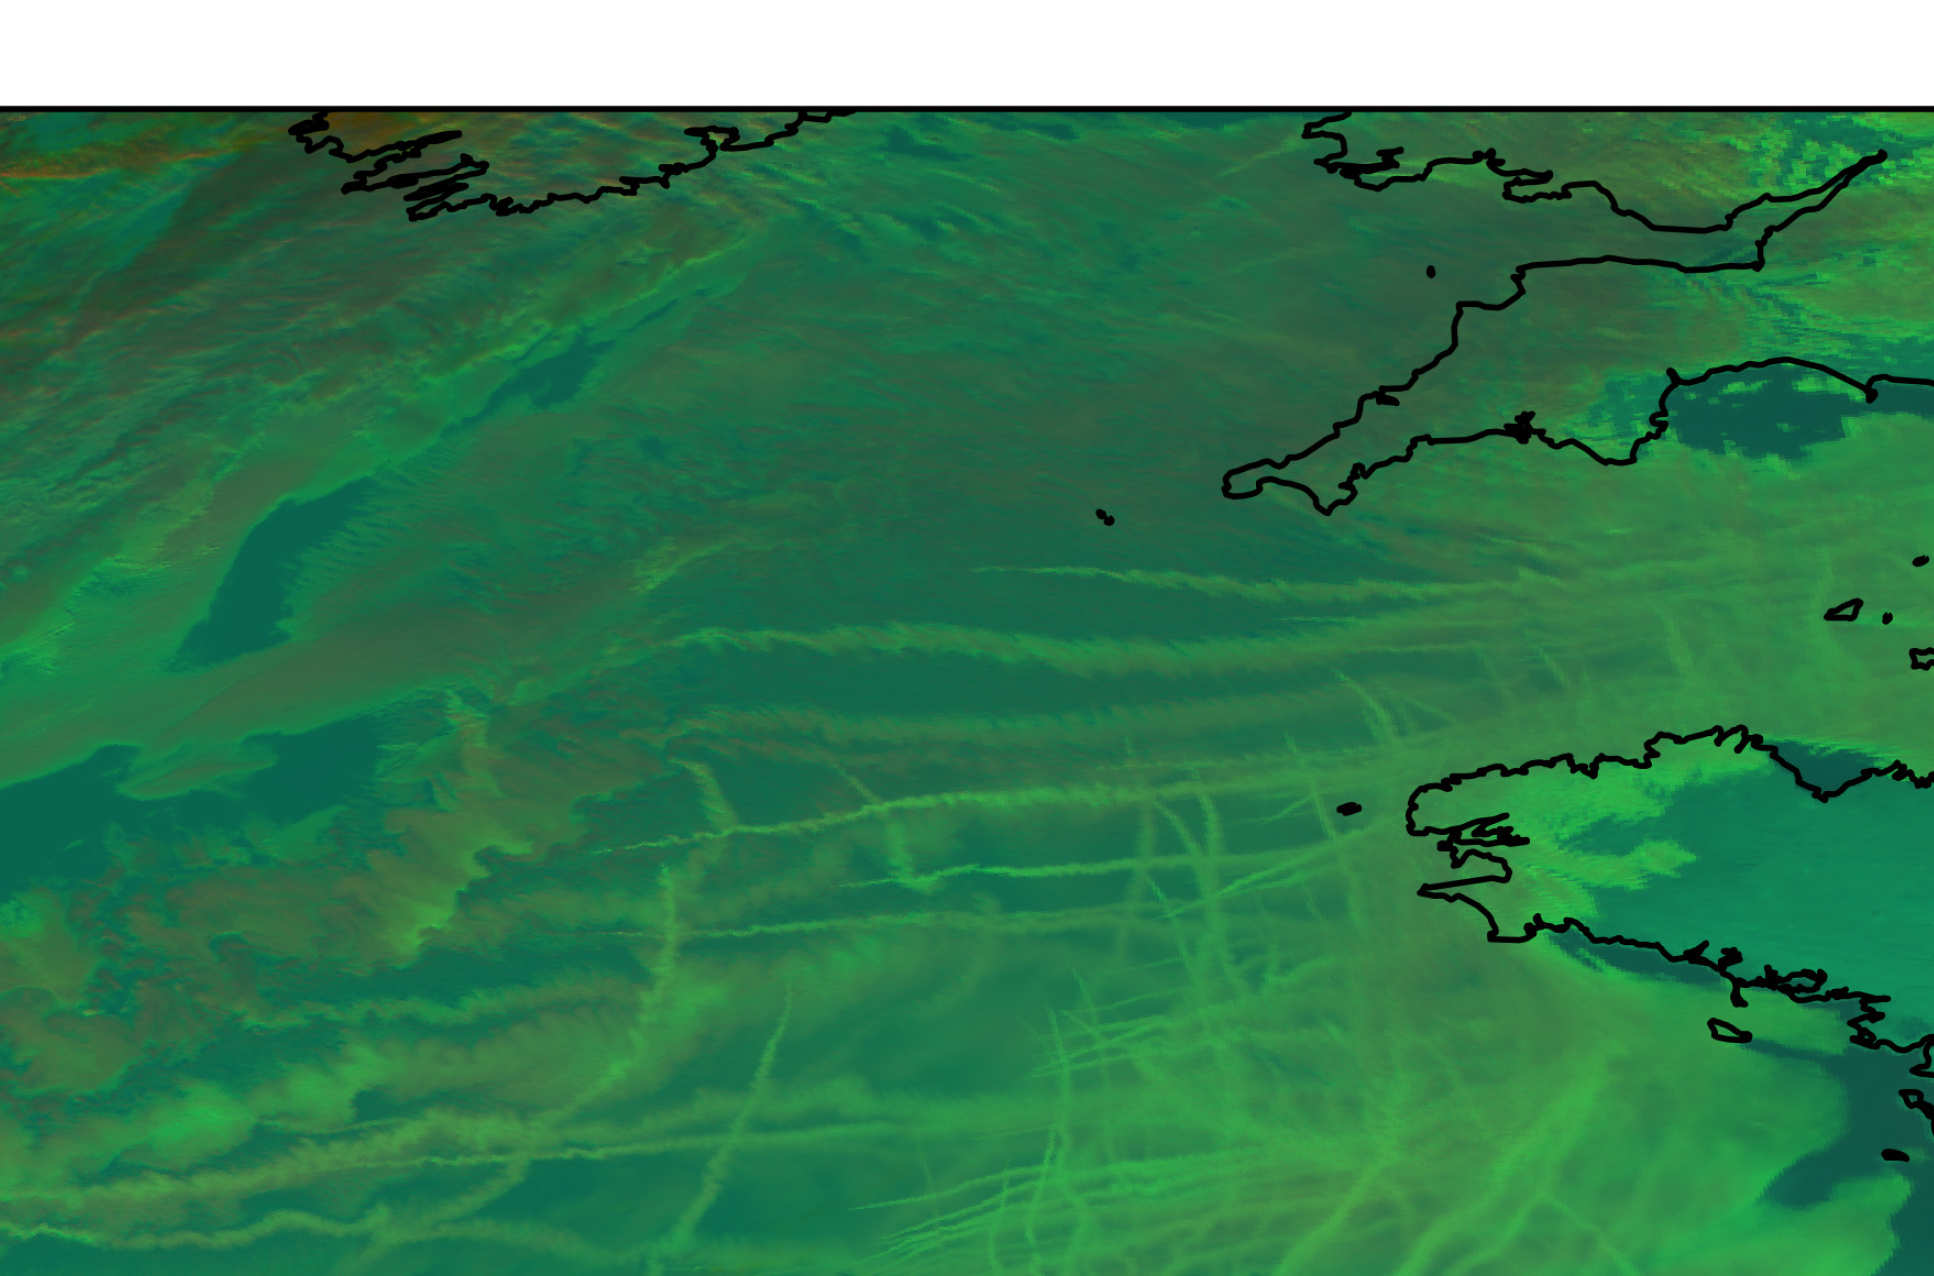 Green-coloured satellite image of clouds and ship tracks off the coast of Cornwall